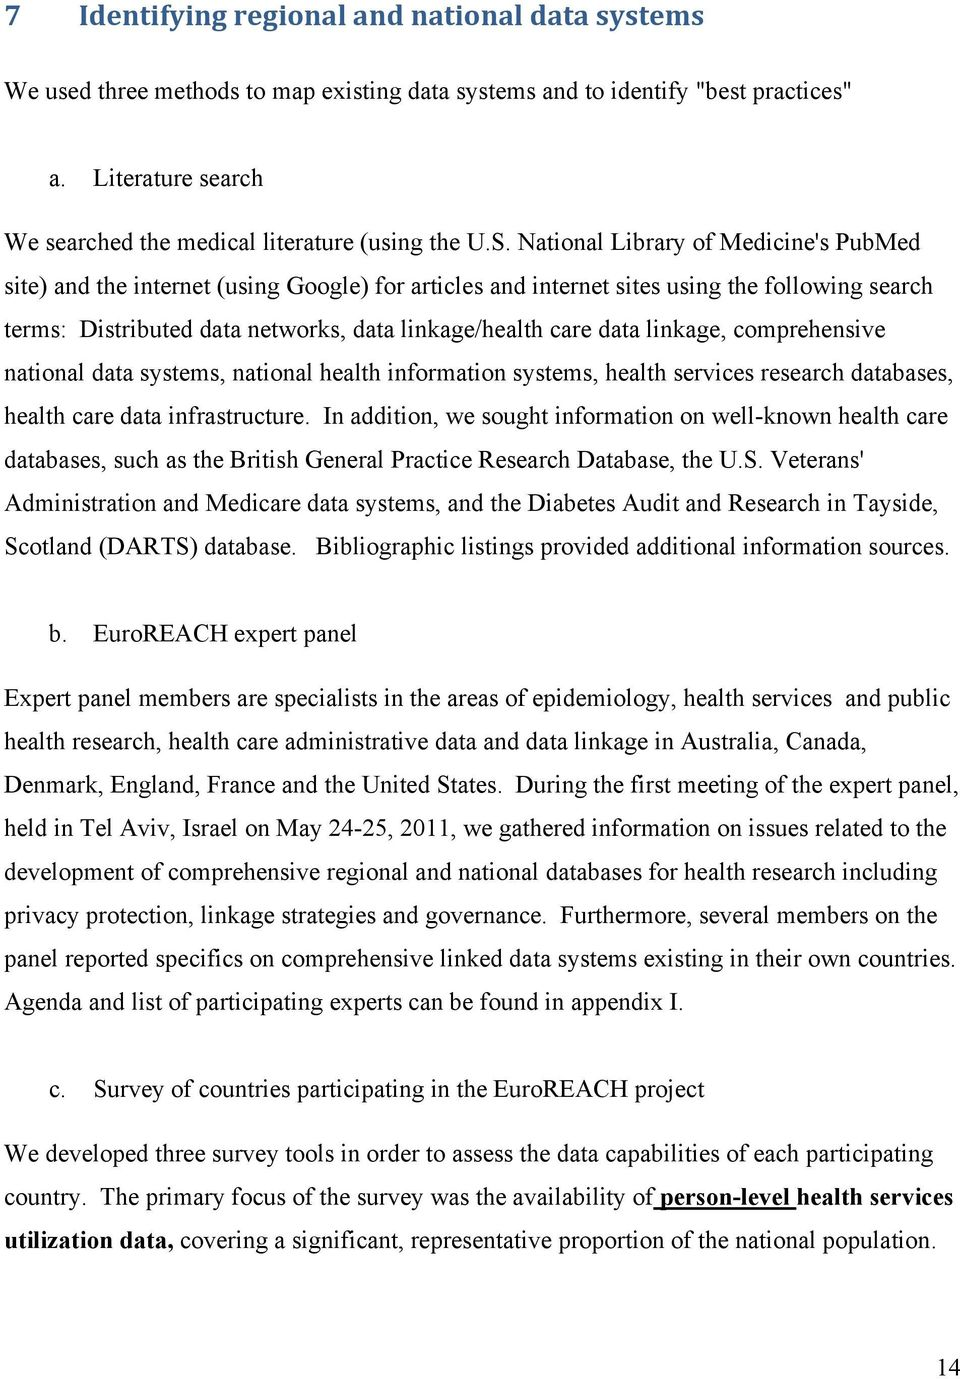 National Library of Medicine's PubMed site) and the internet (using Google) for articles and internet sites using the following search terms: Distributed data networks, data linkage/health care data